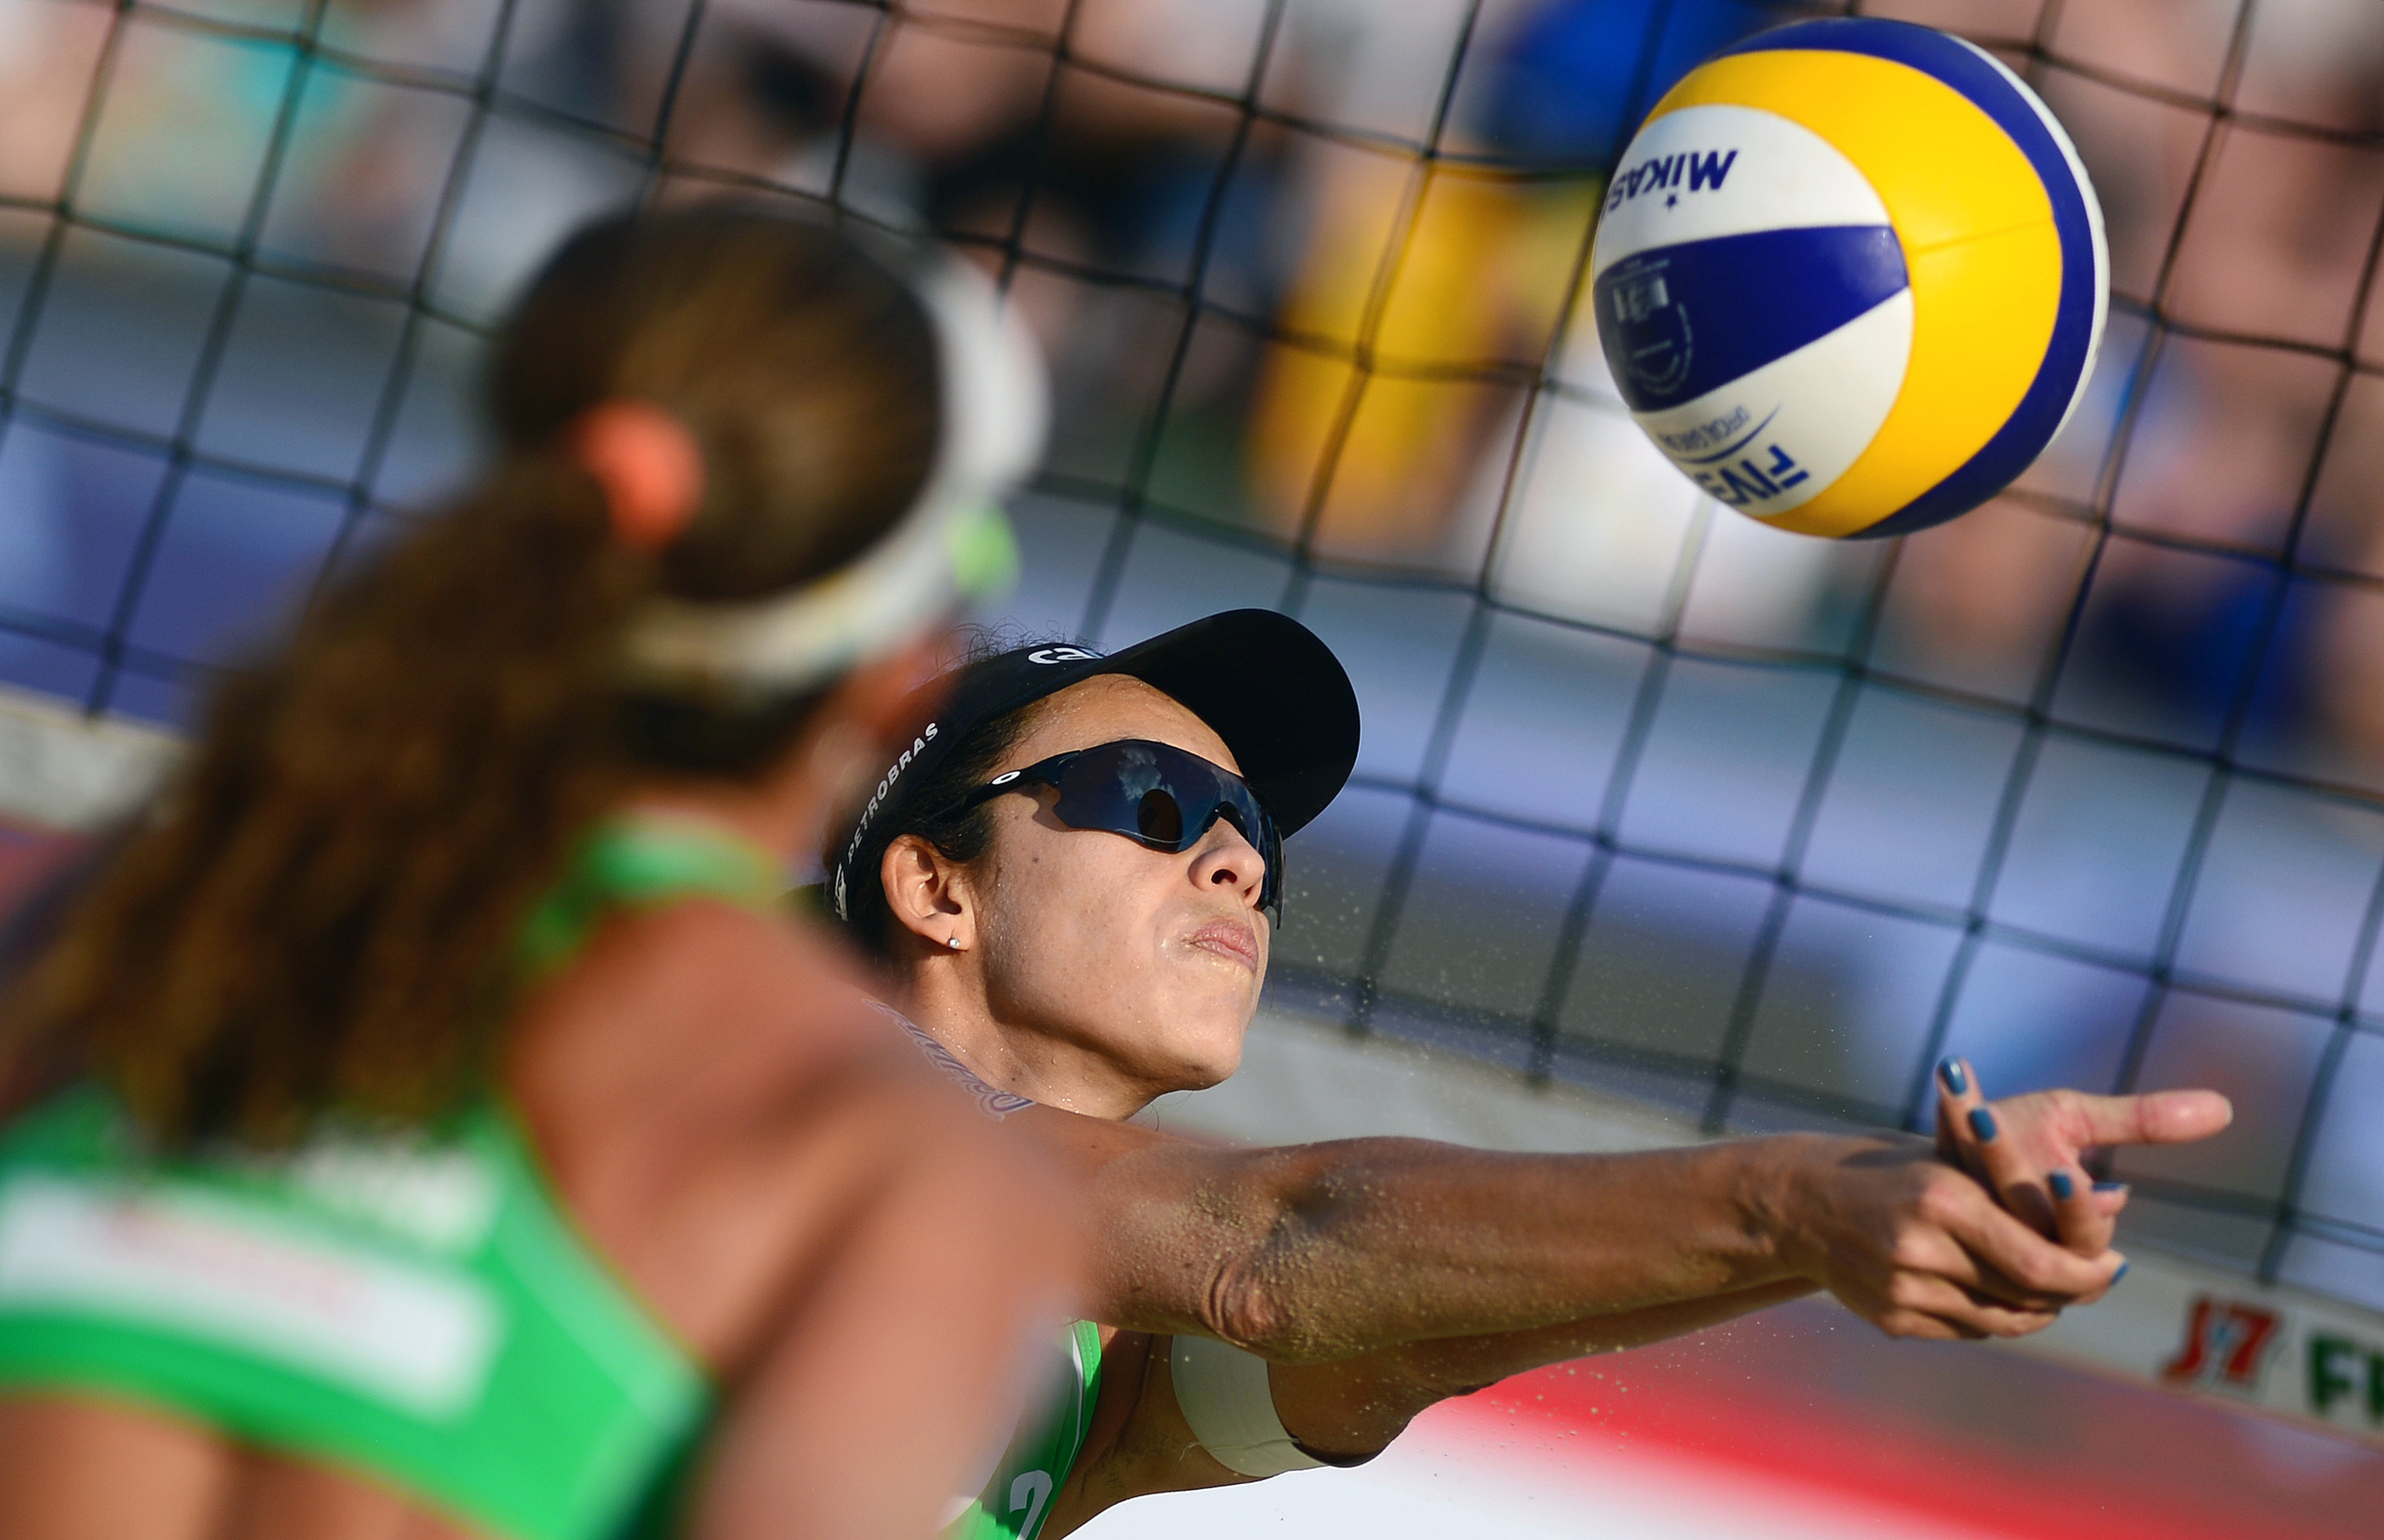 <strong>Talita Antunes and Larissa Franca, Beach Volleyball, Brazil</strong>The pressure on Brazil's top-ranked women's beach-volleyball team to deliver gold on Copacabana Beach will be intense. França briefly retired after winning a bronze in London; Antunes is a third-time Olympian.